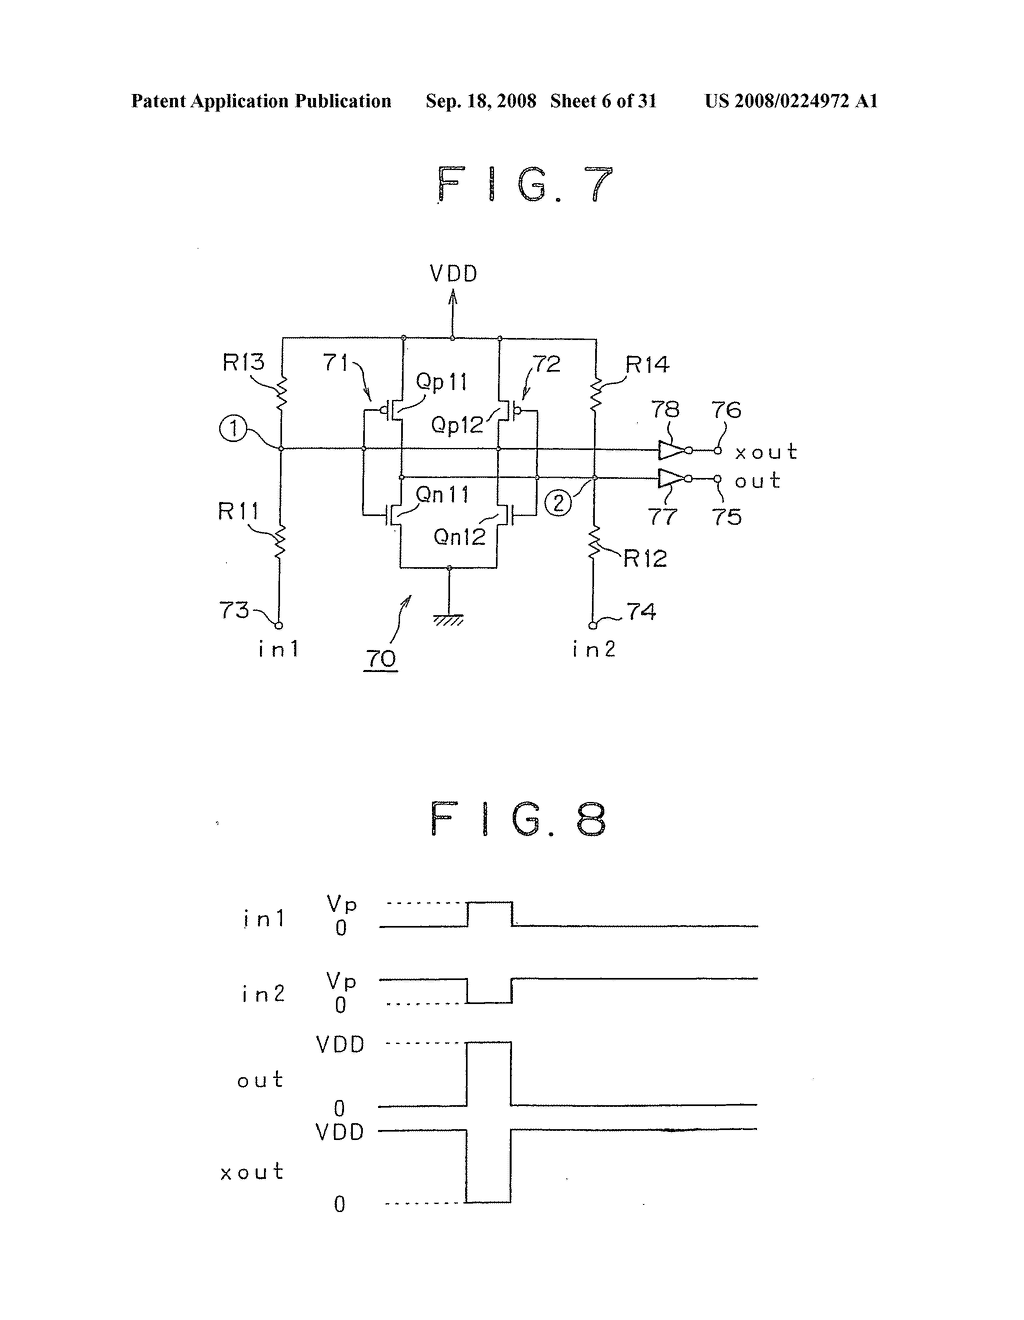 Digital Analog Converter Circuit Level Shift Latching Circuits Schematic Picture Register Utilizing Sampling Latch And Liquid Crystal Display